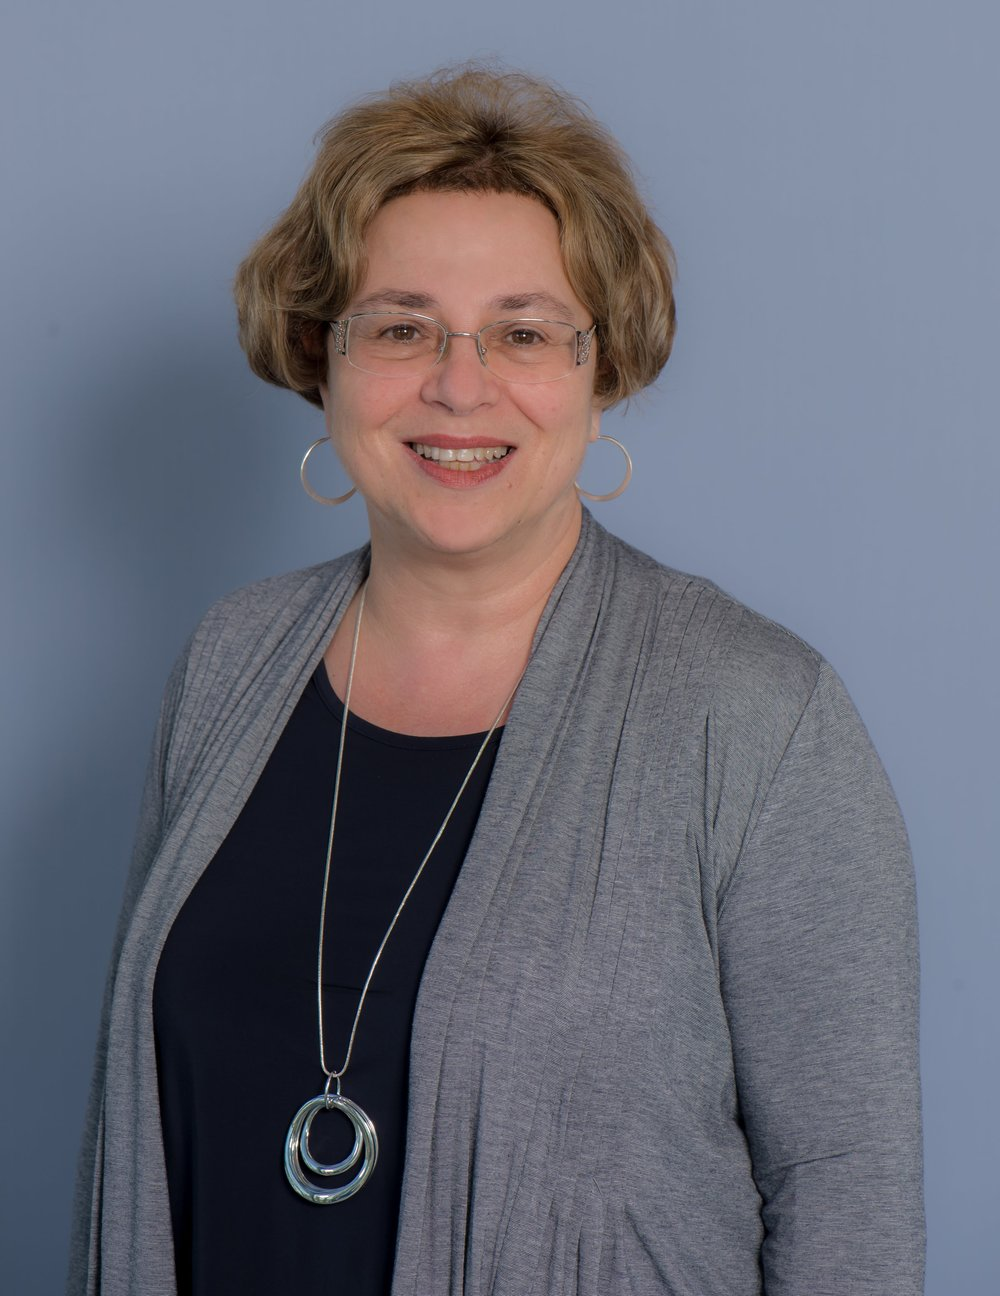 Professor Michele Grossman, Research Chair in Diversity and Community Resilience